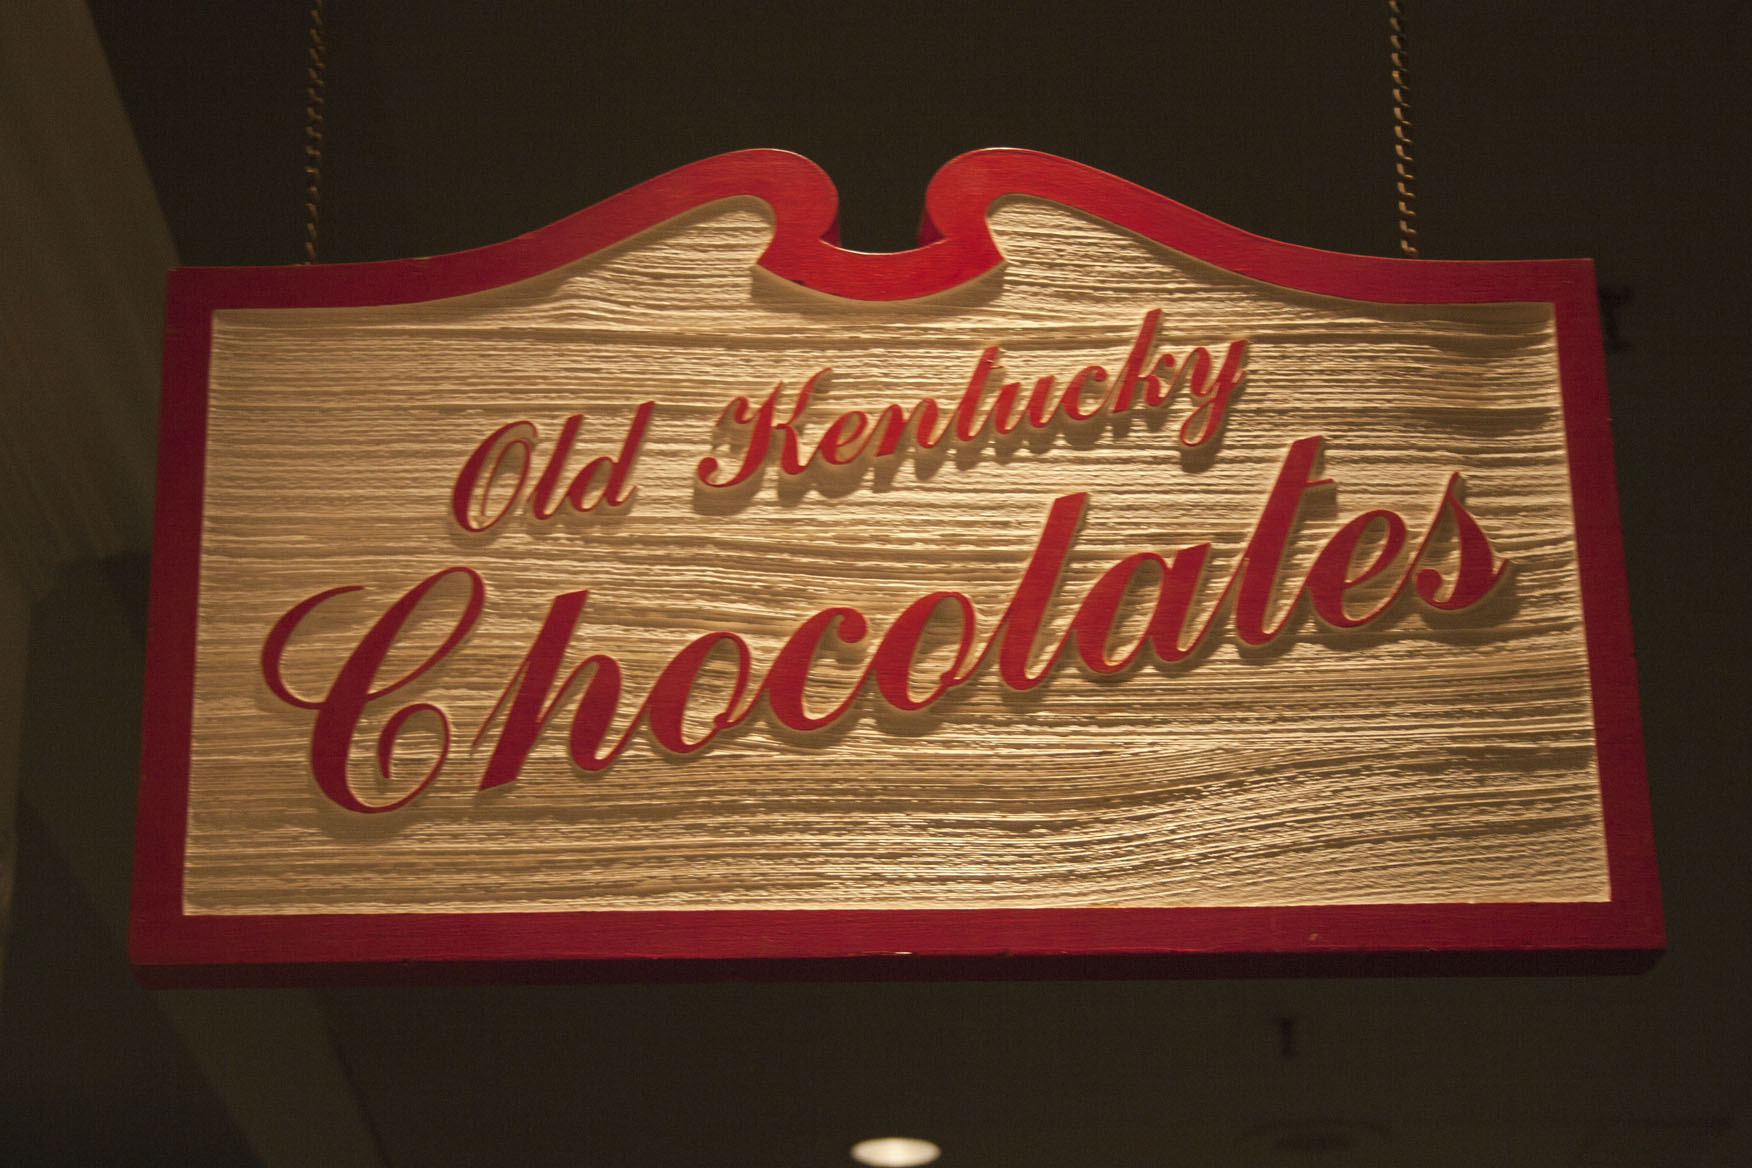 Old Kentucky Chocolates: A Sweet Local Treat – BlueCoast Live